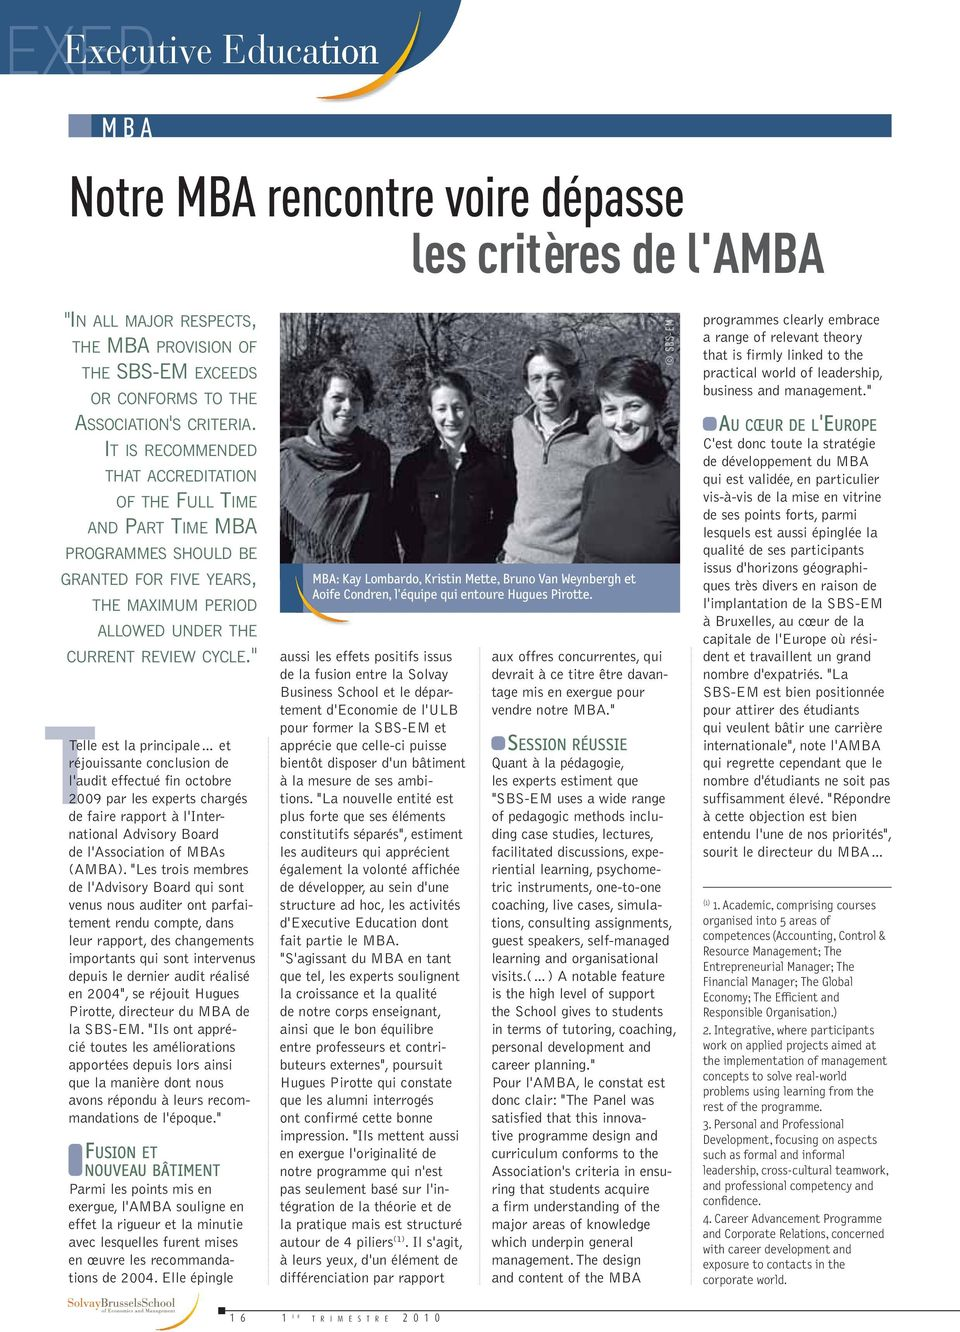 """ TTelle est la principale et réjouissante conclusion de l'audit effectué fin octobre 2009 par les experts chargés de faire rapport à l'international Advisory Board de l'association of MBAs (AMBA)."